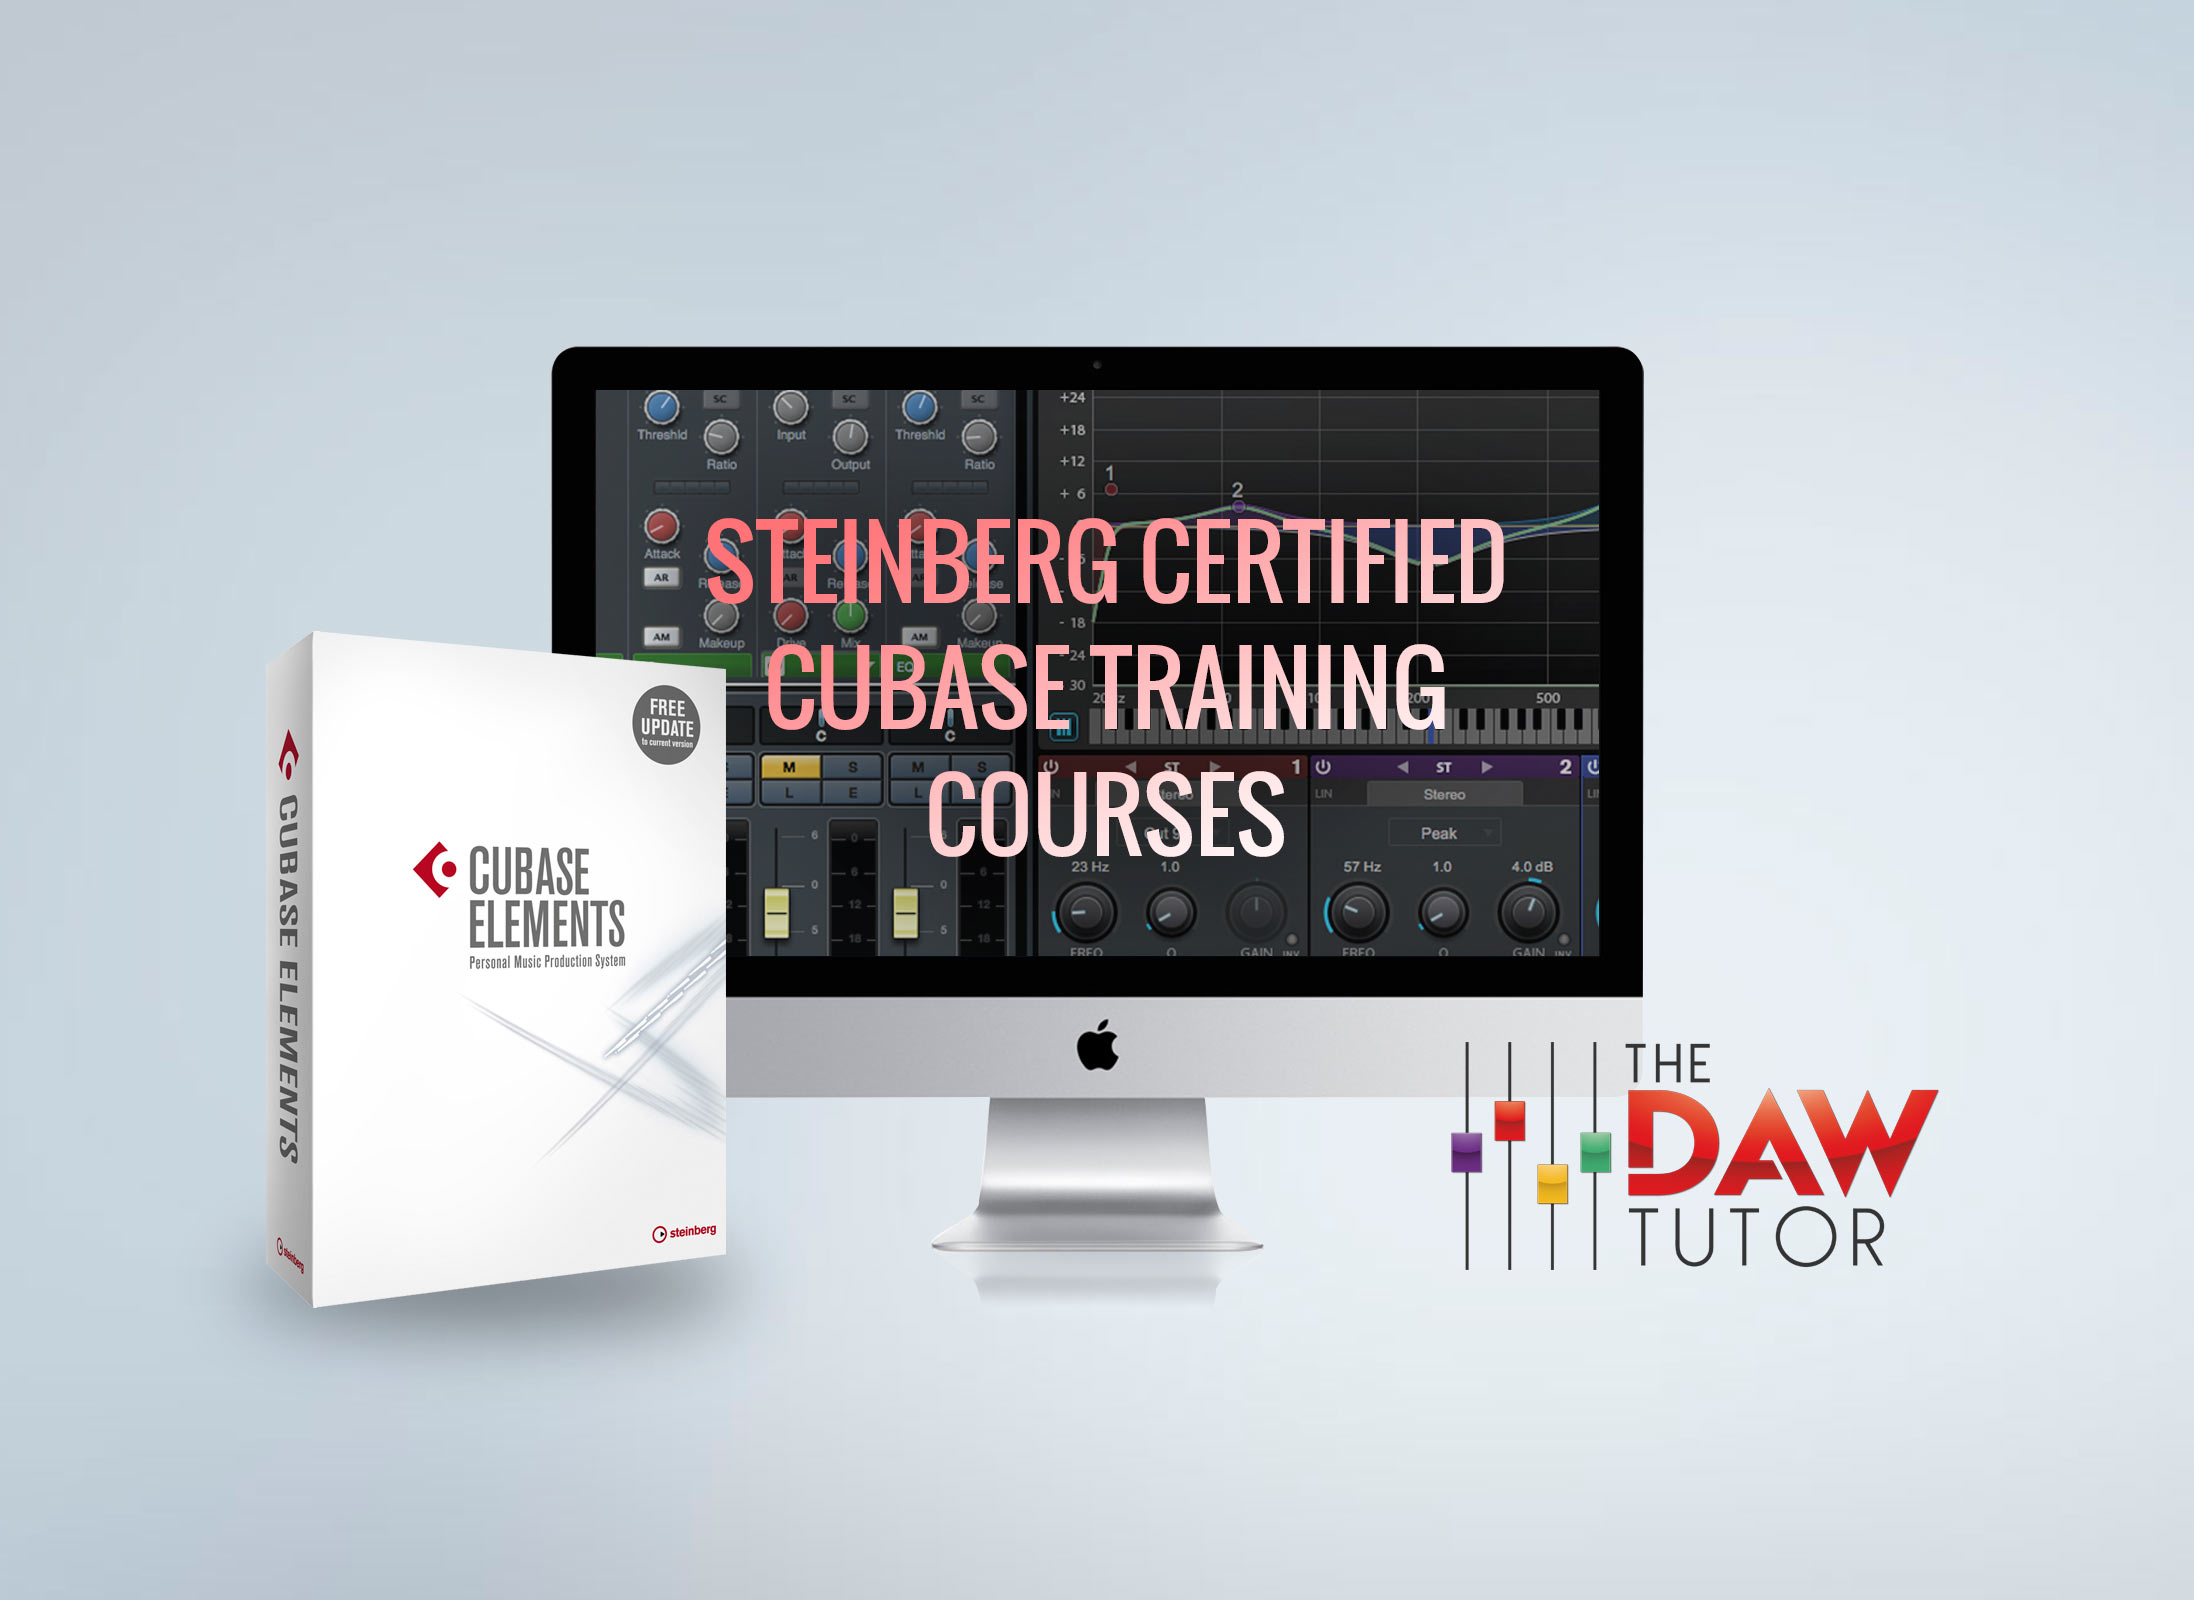 Steinberg Certified Cubase Training Courses - The DAW Tutor